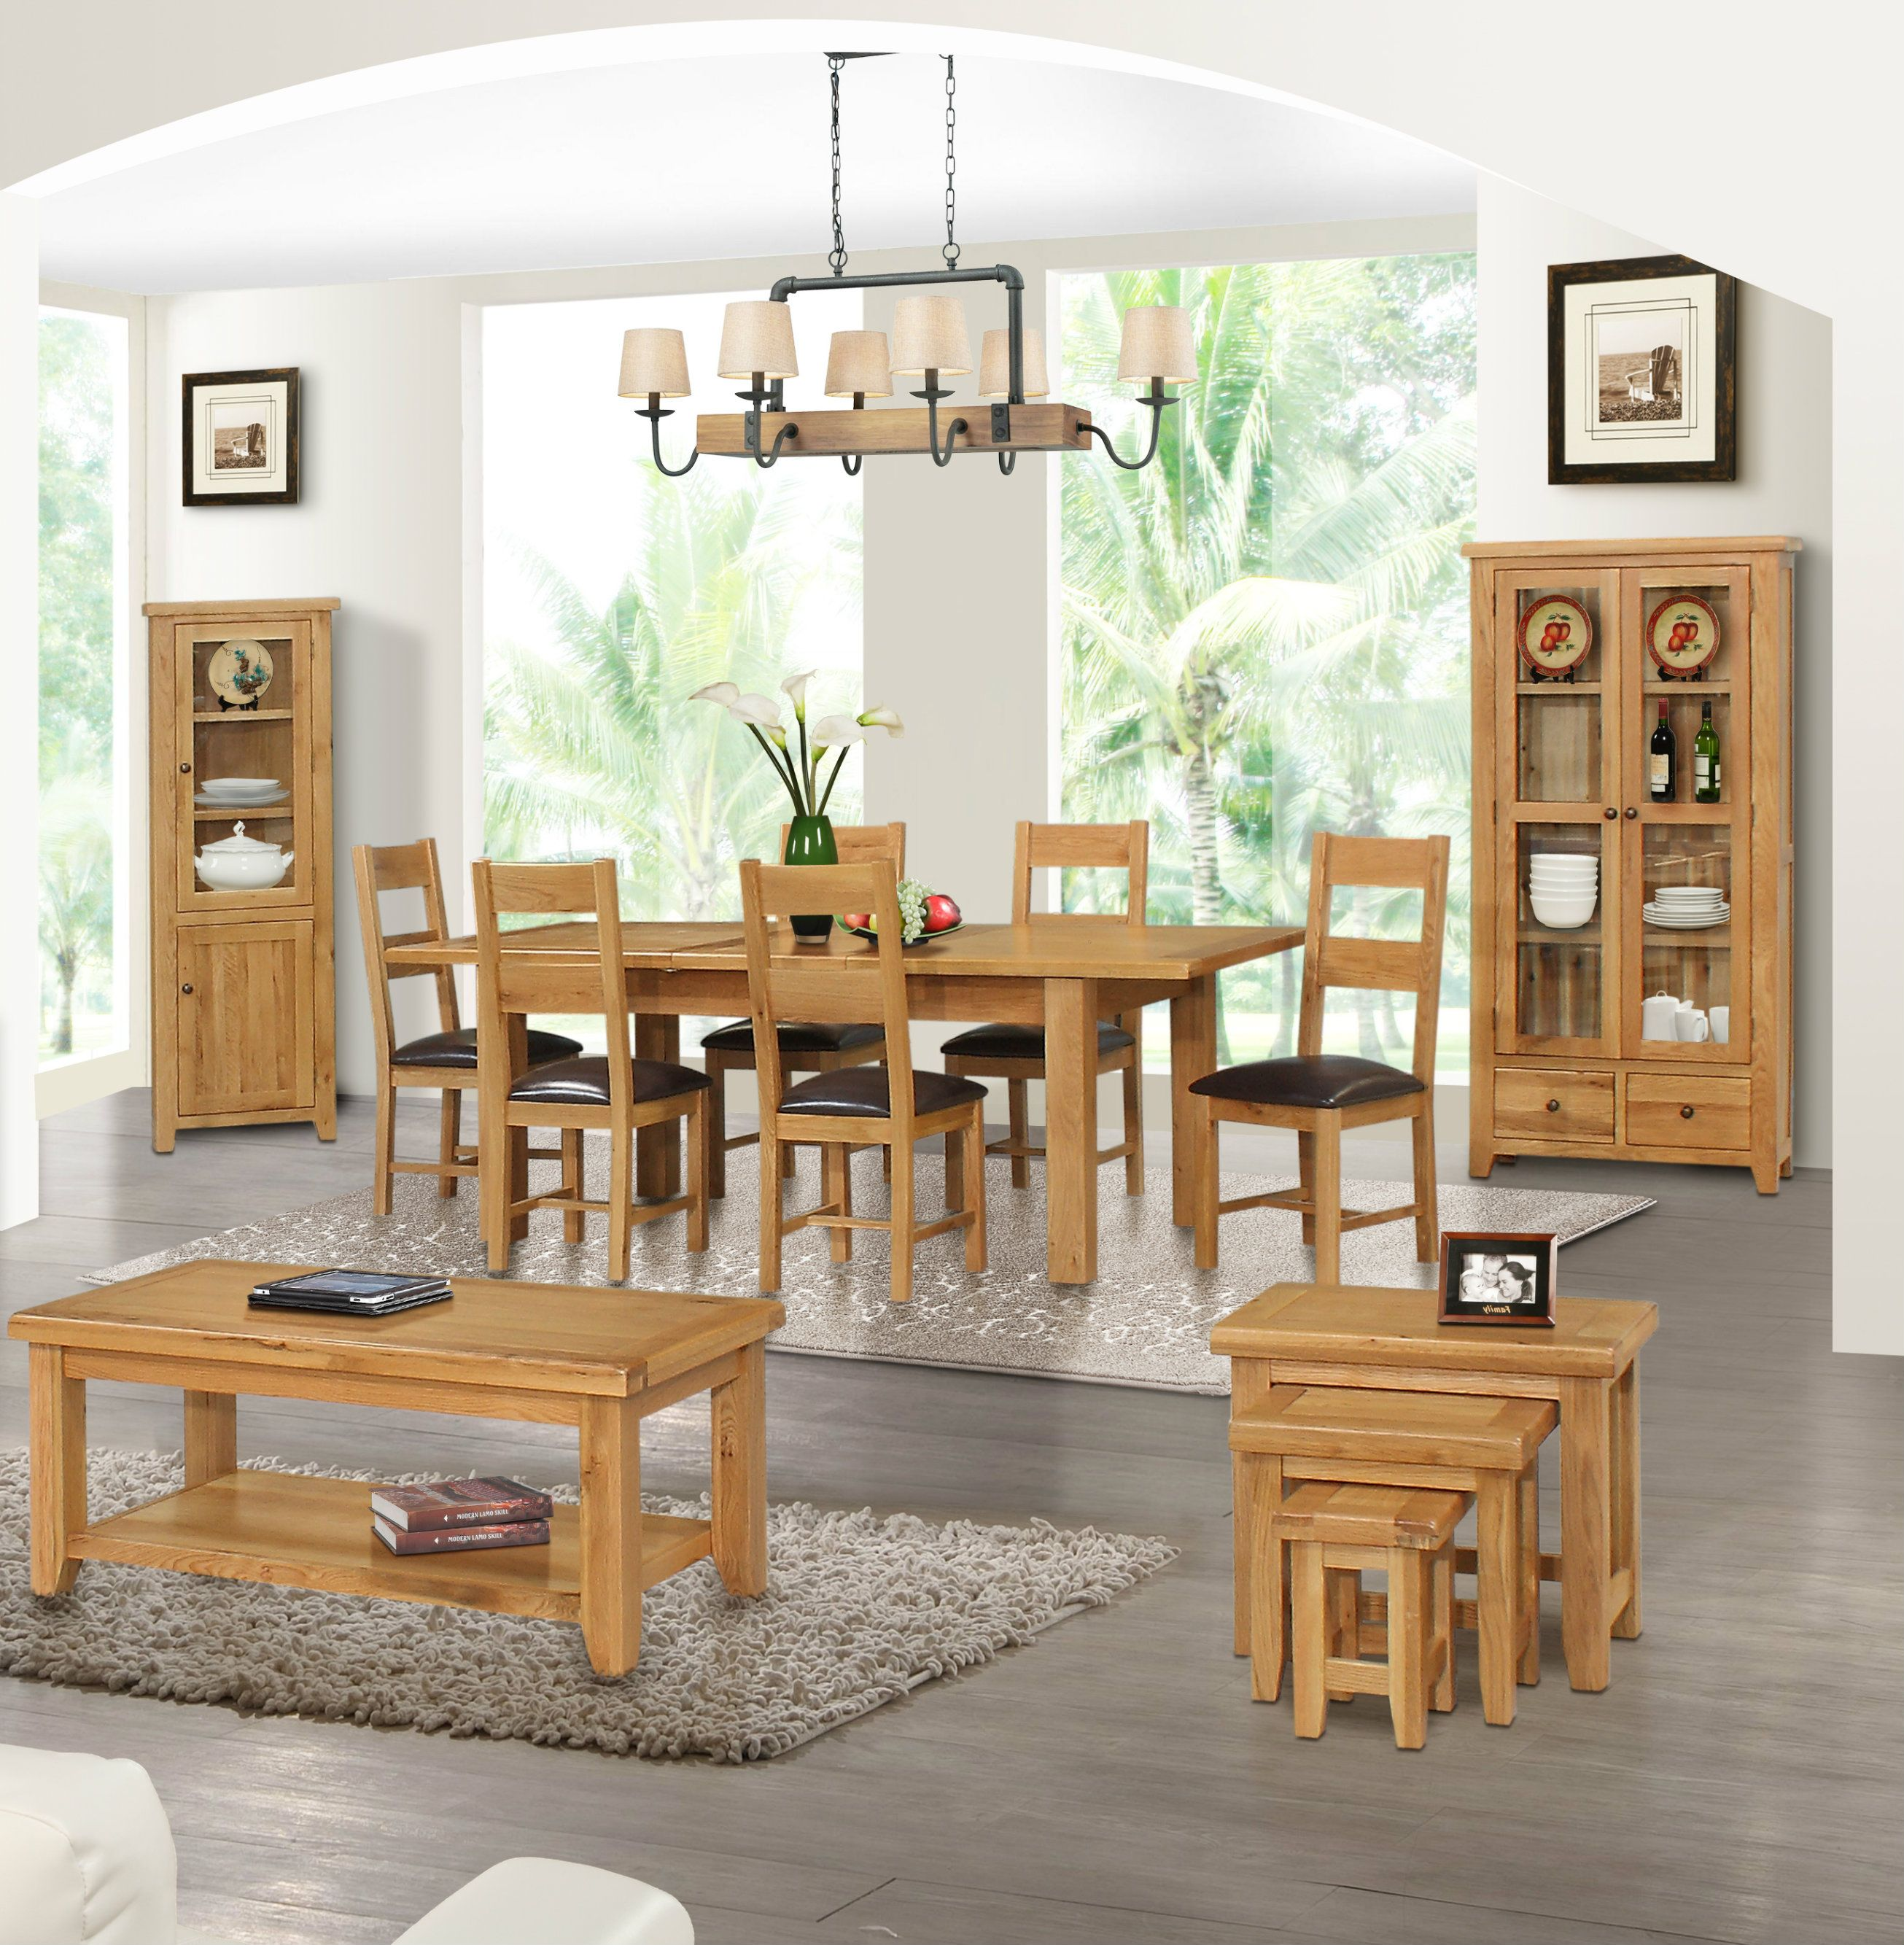 Otago Oak Coffee Table  Nest of Tables  Display Cabinet and Dining     Otago Oak Coffee Table  Nest of Tables  Display Cabinet and Dining Room  Table